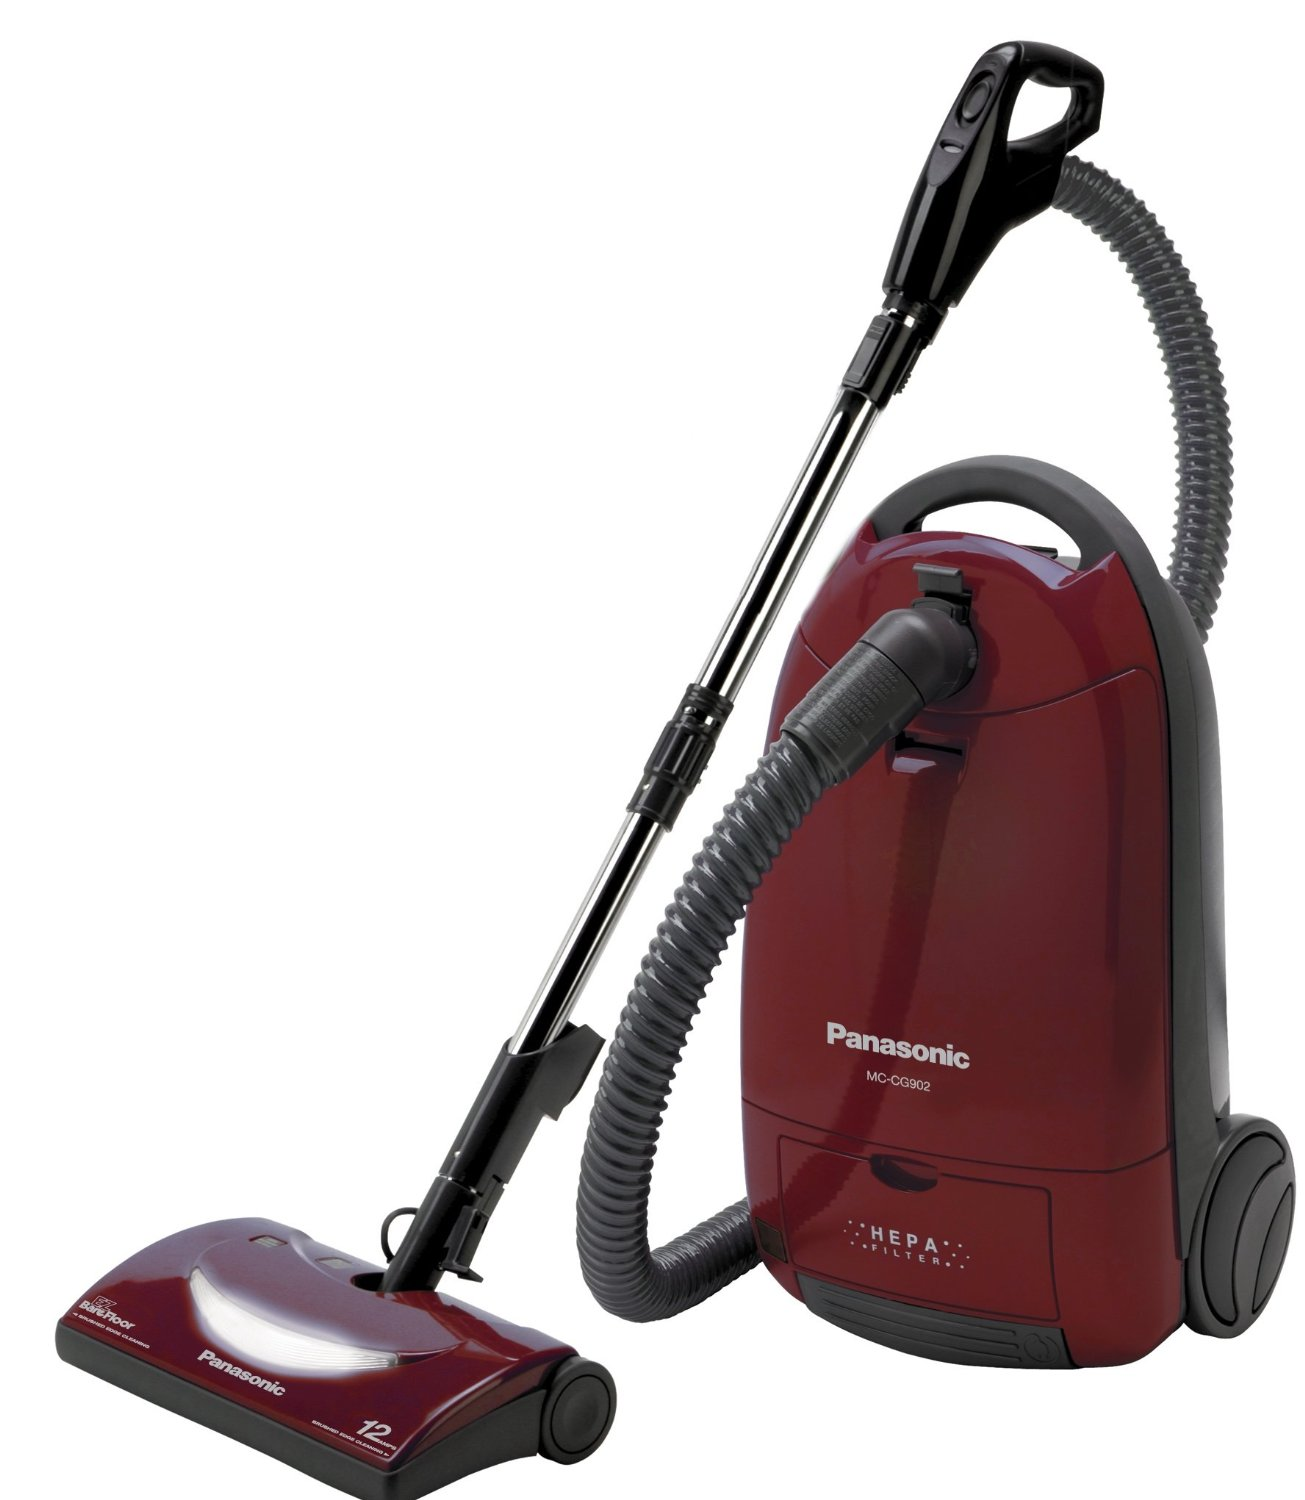 best canister vacuum panasonic mc cg902 size bag canister vacuum cleaner 13005